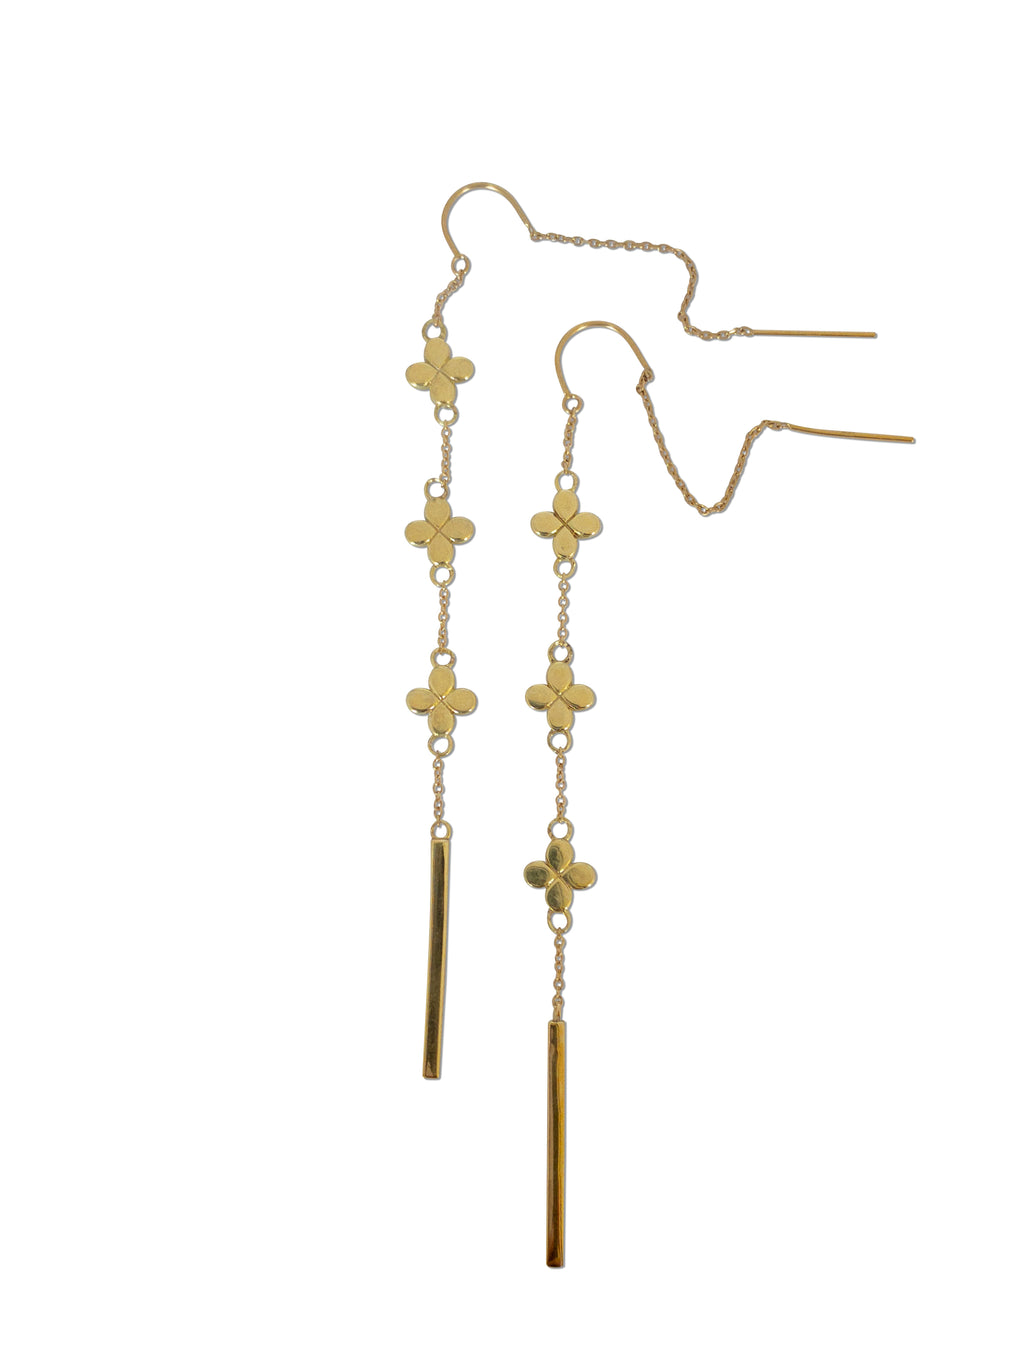 18k Solid Gold Flower Threaders